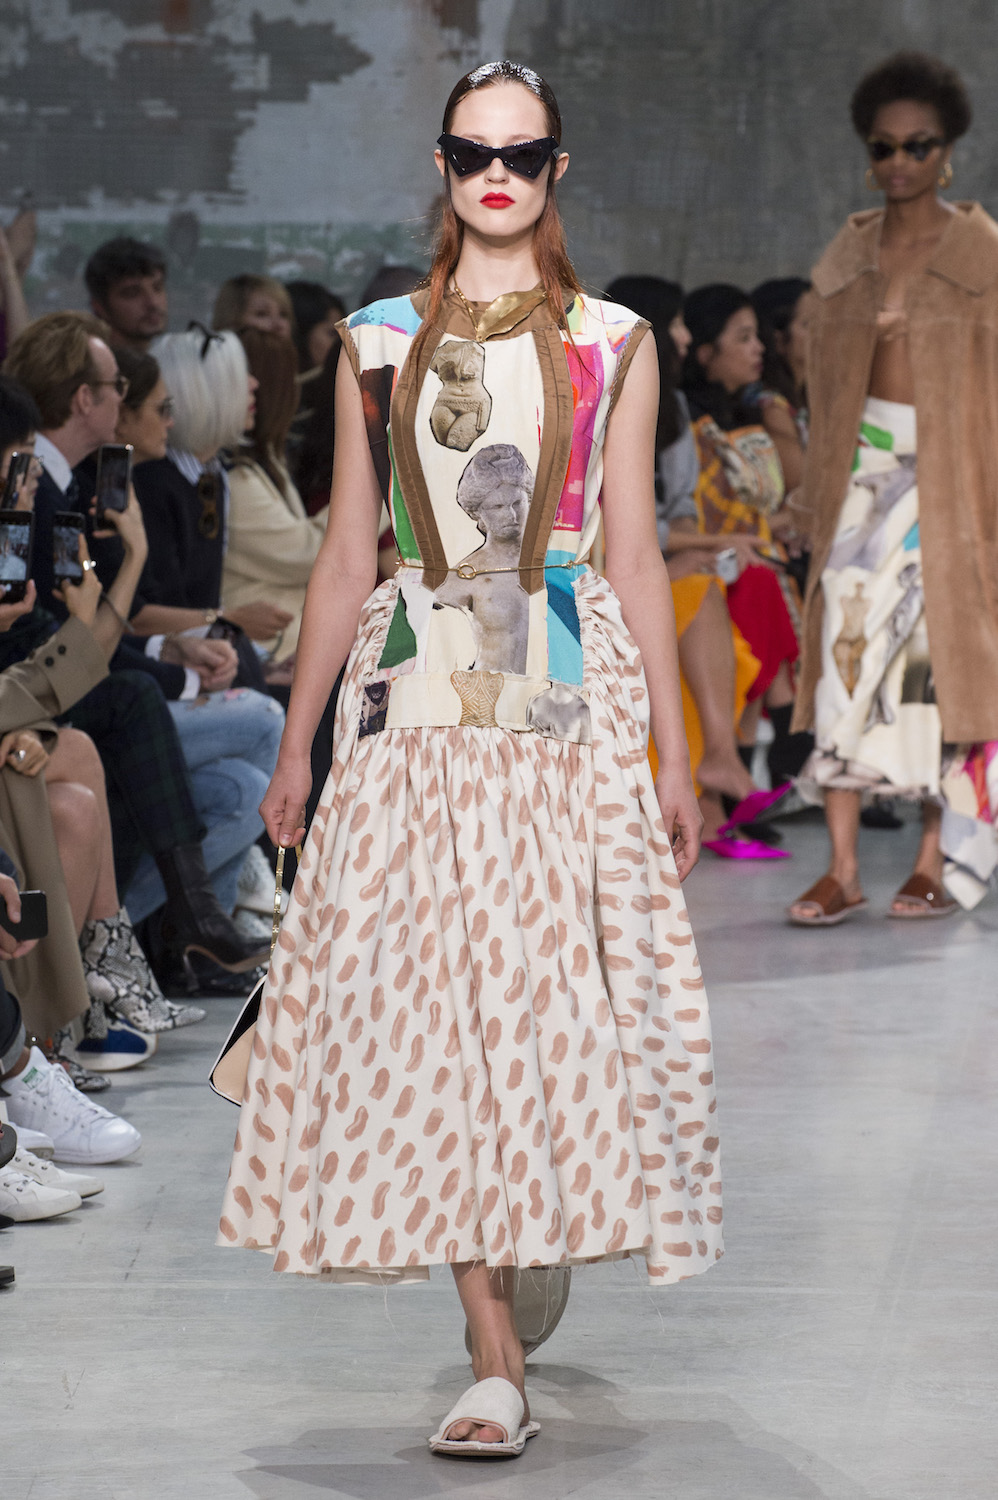 Marni Reveals Its Creative Process for Spring/Summer 2019